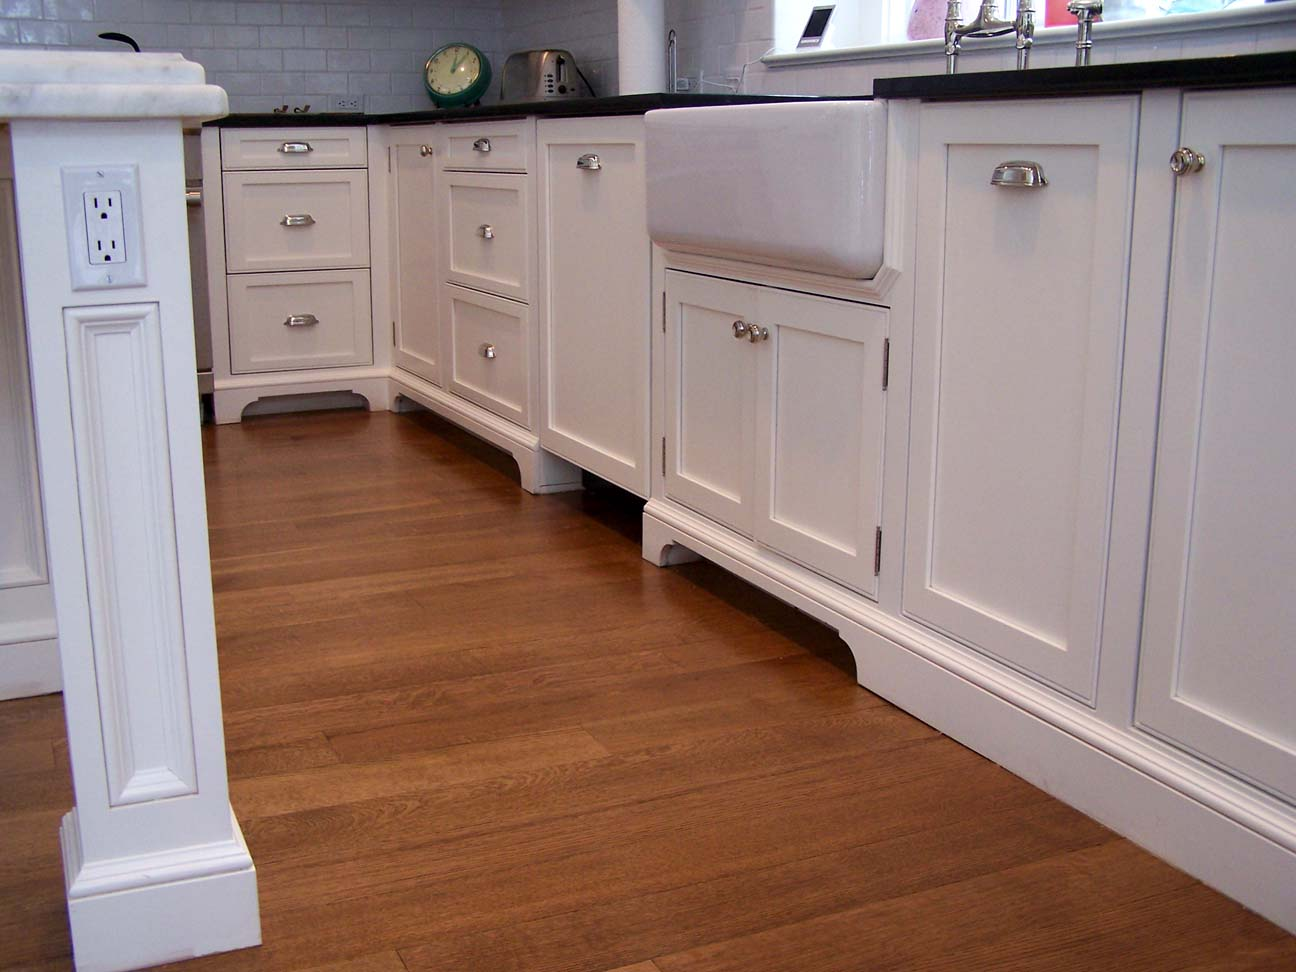 Kitchen Molding and Architectural Elements: Style Up - KUKUN